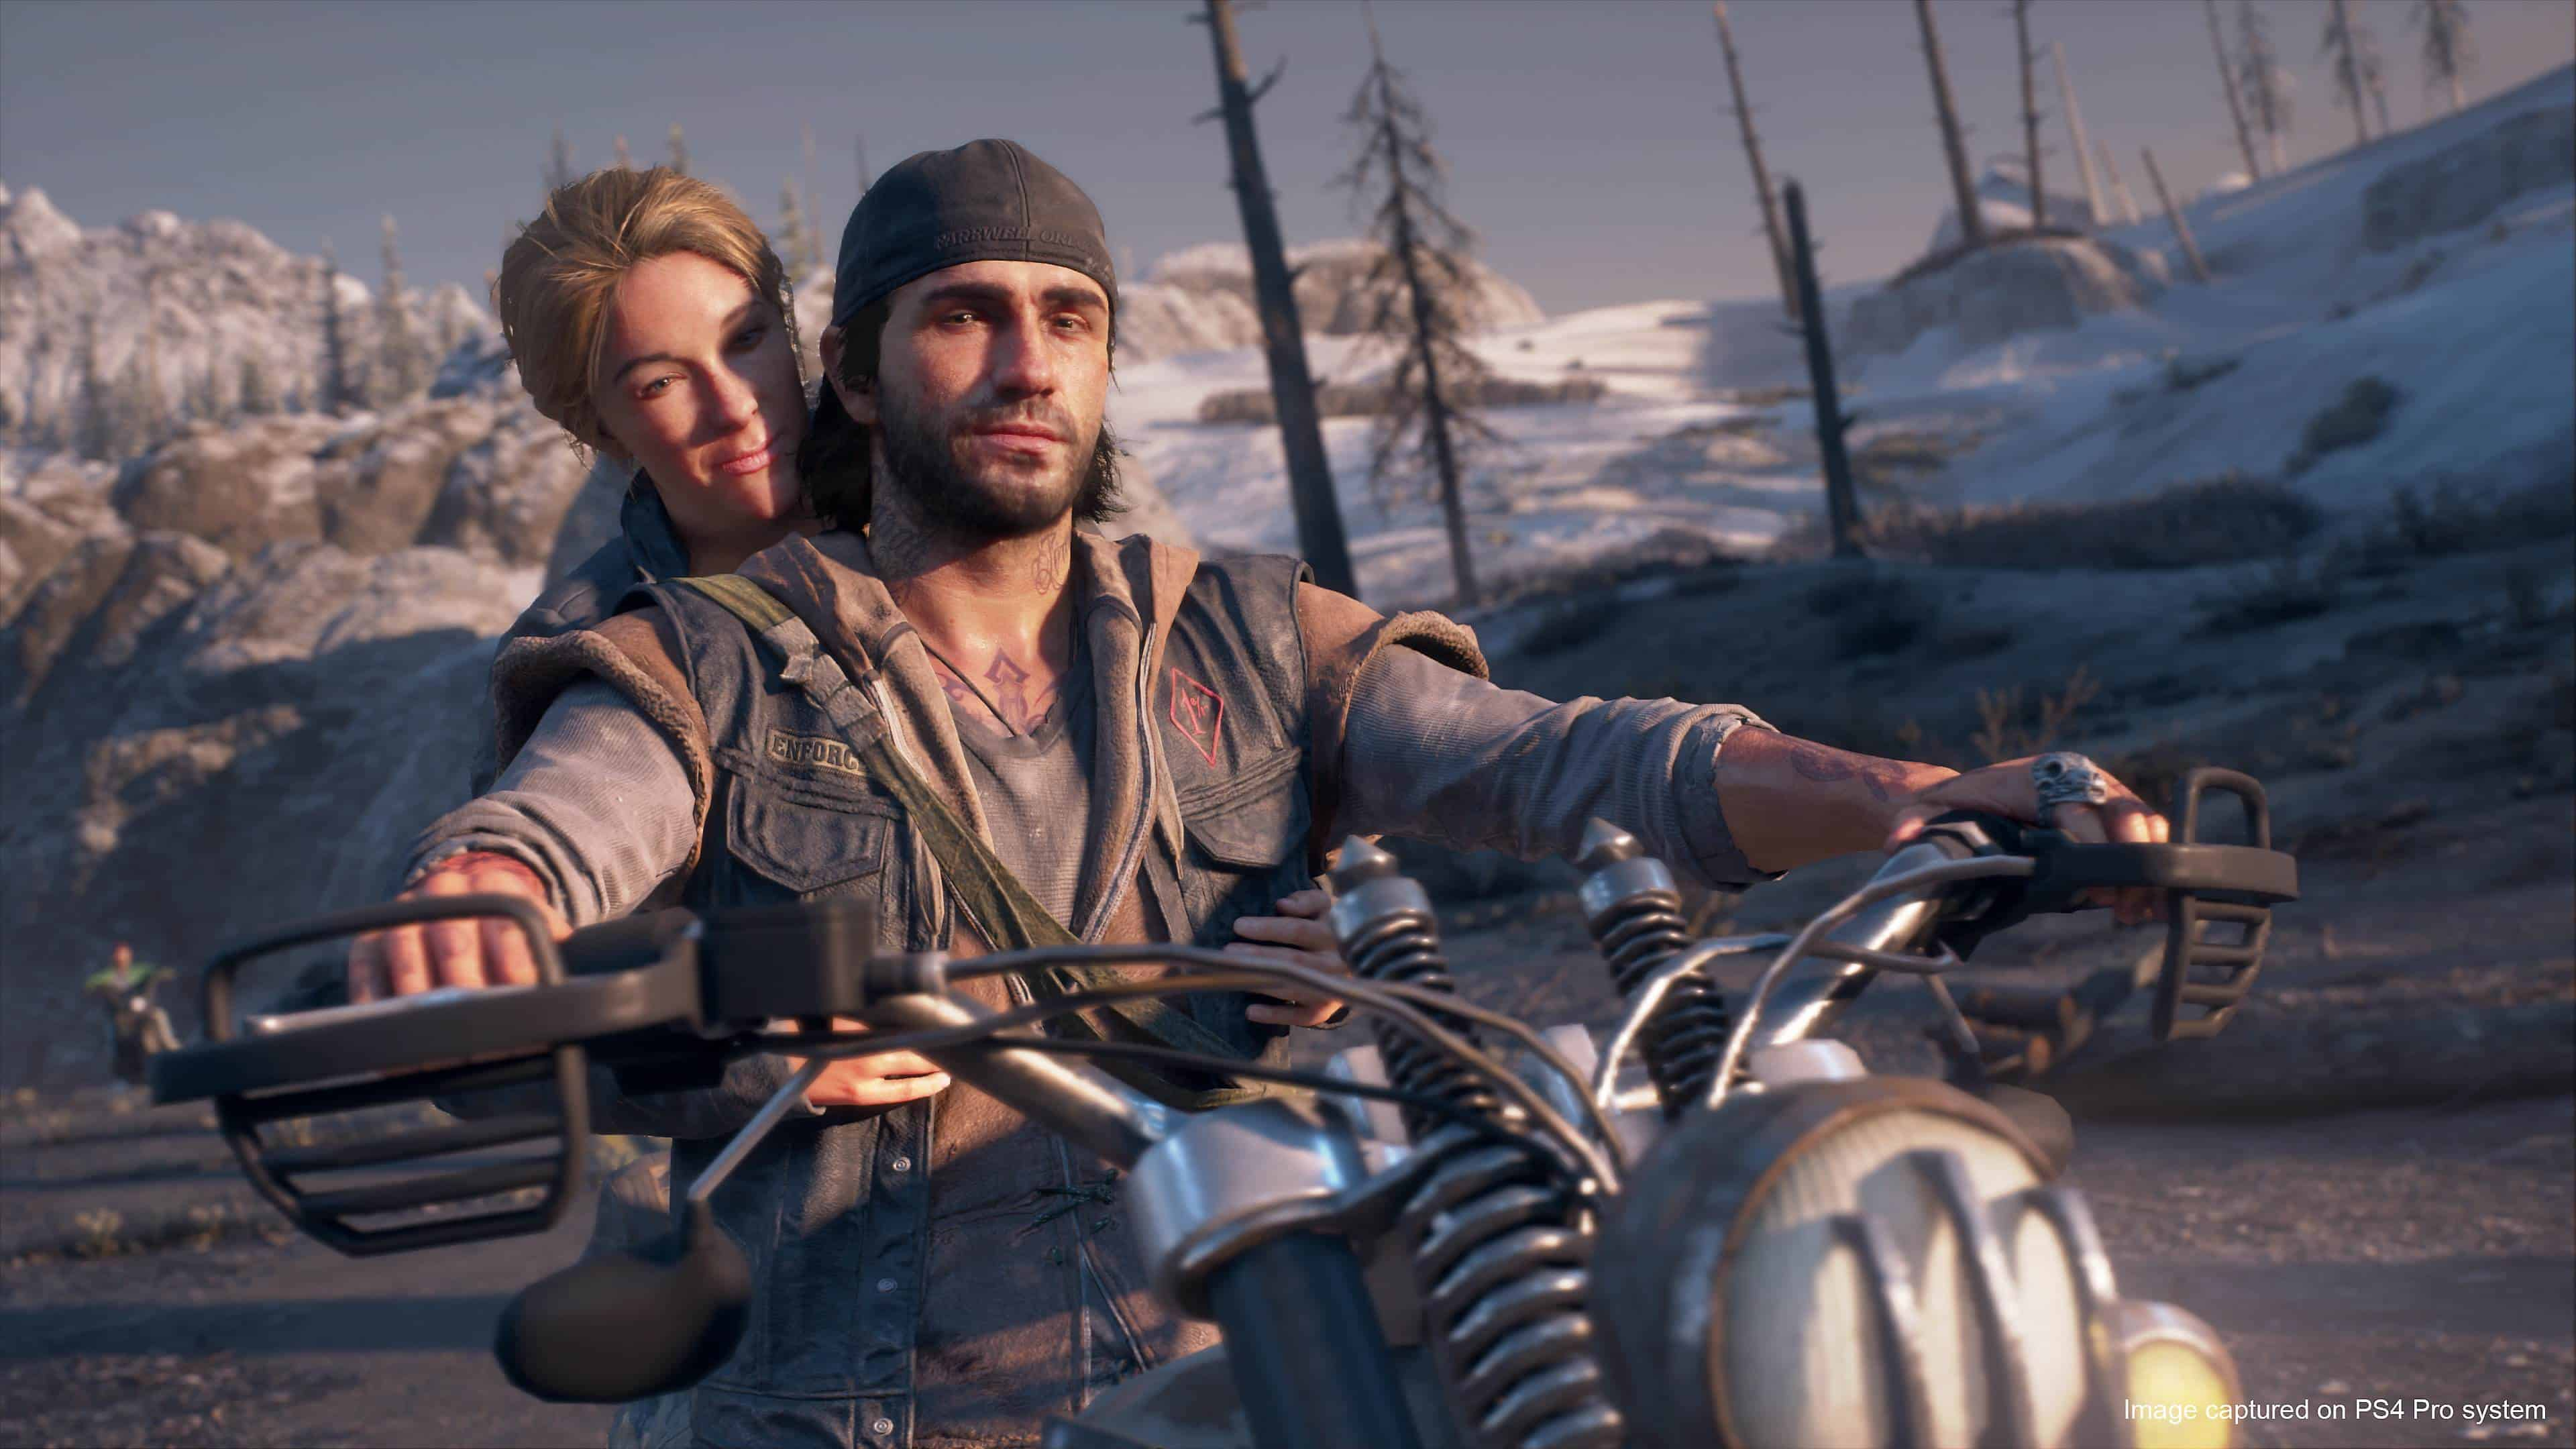 Days Gone Director John Garvin Says Metacritic Score Is Everything to Sony - Wccftech